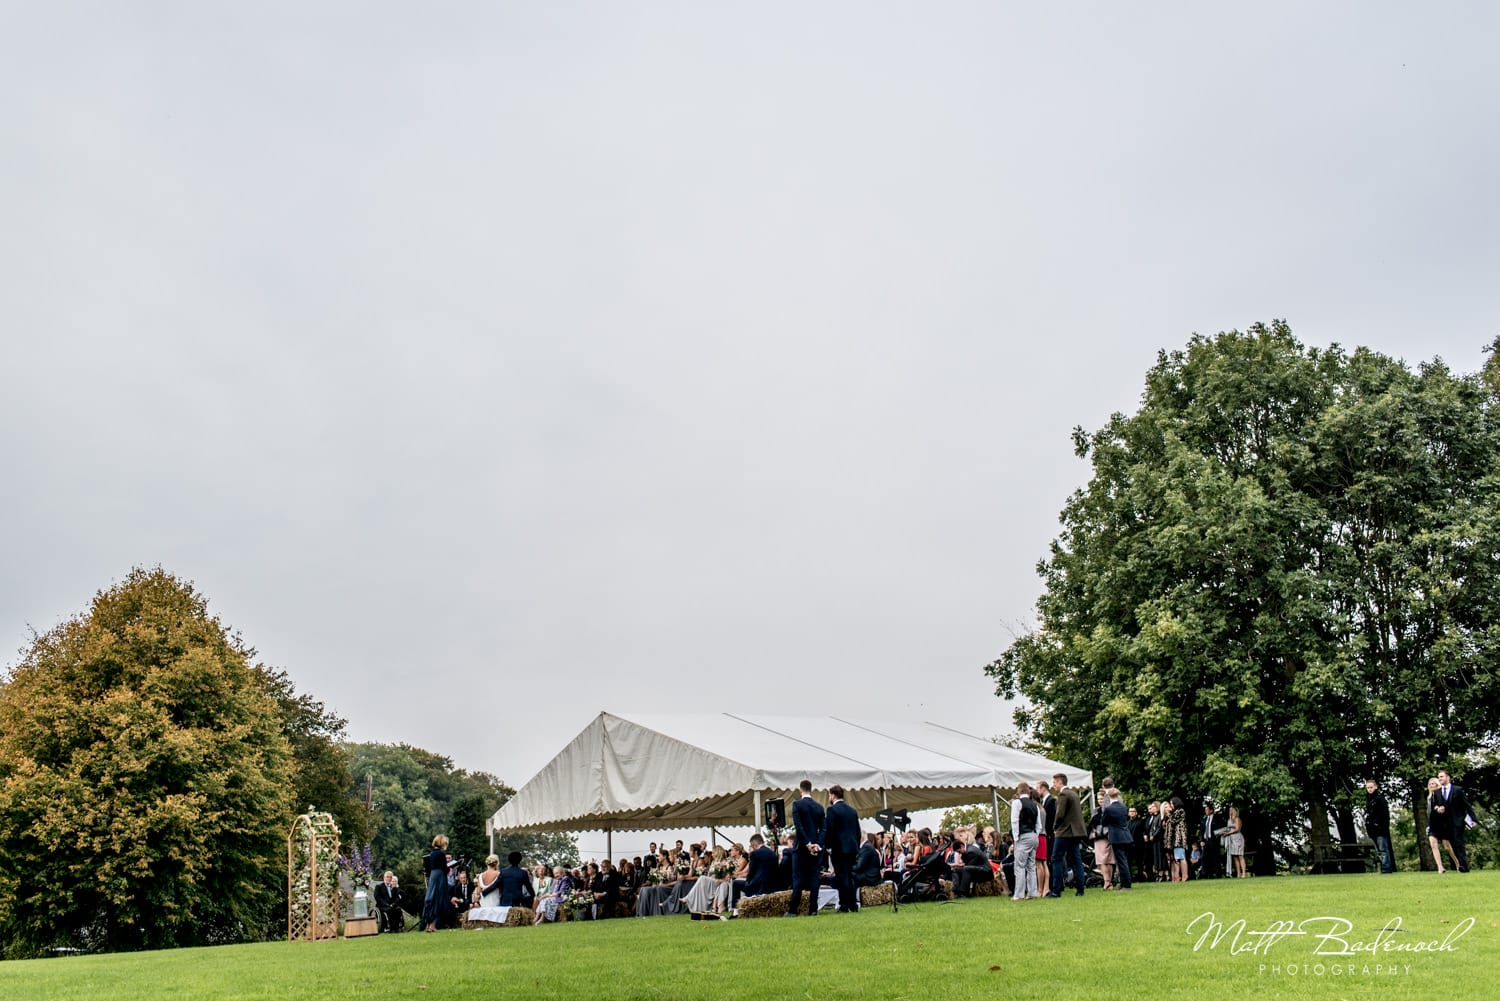 Outdoor wedding ceremony at Wookey Hole in Somerset